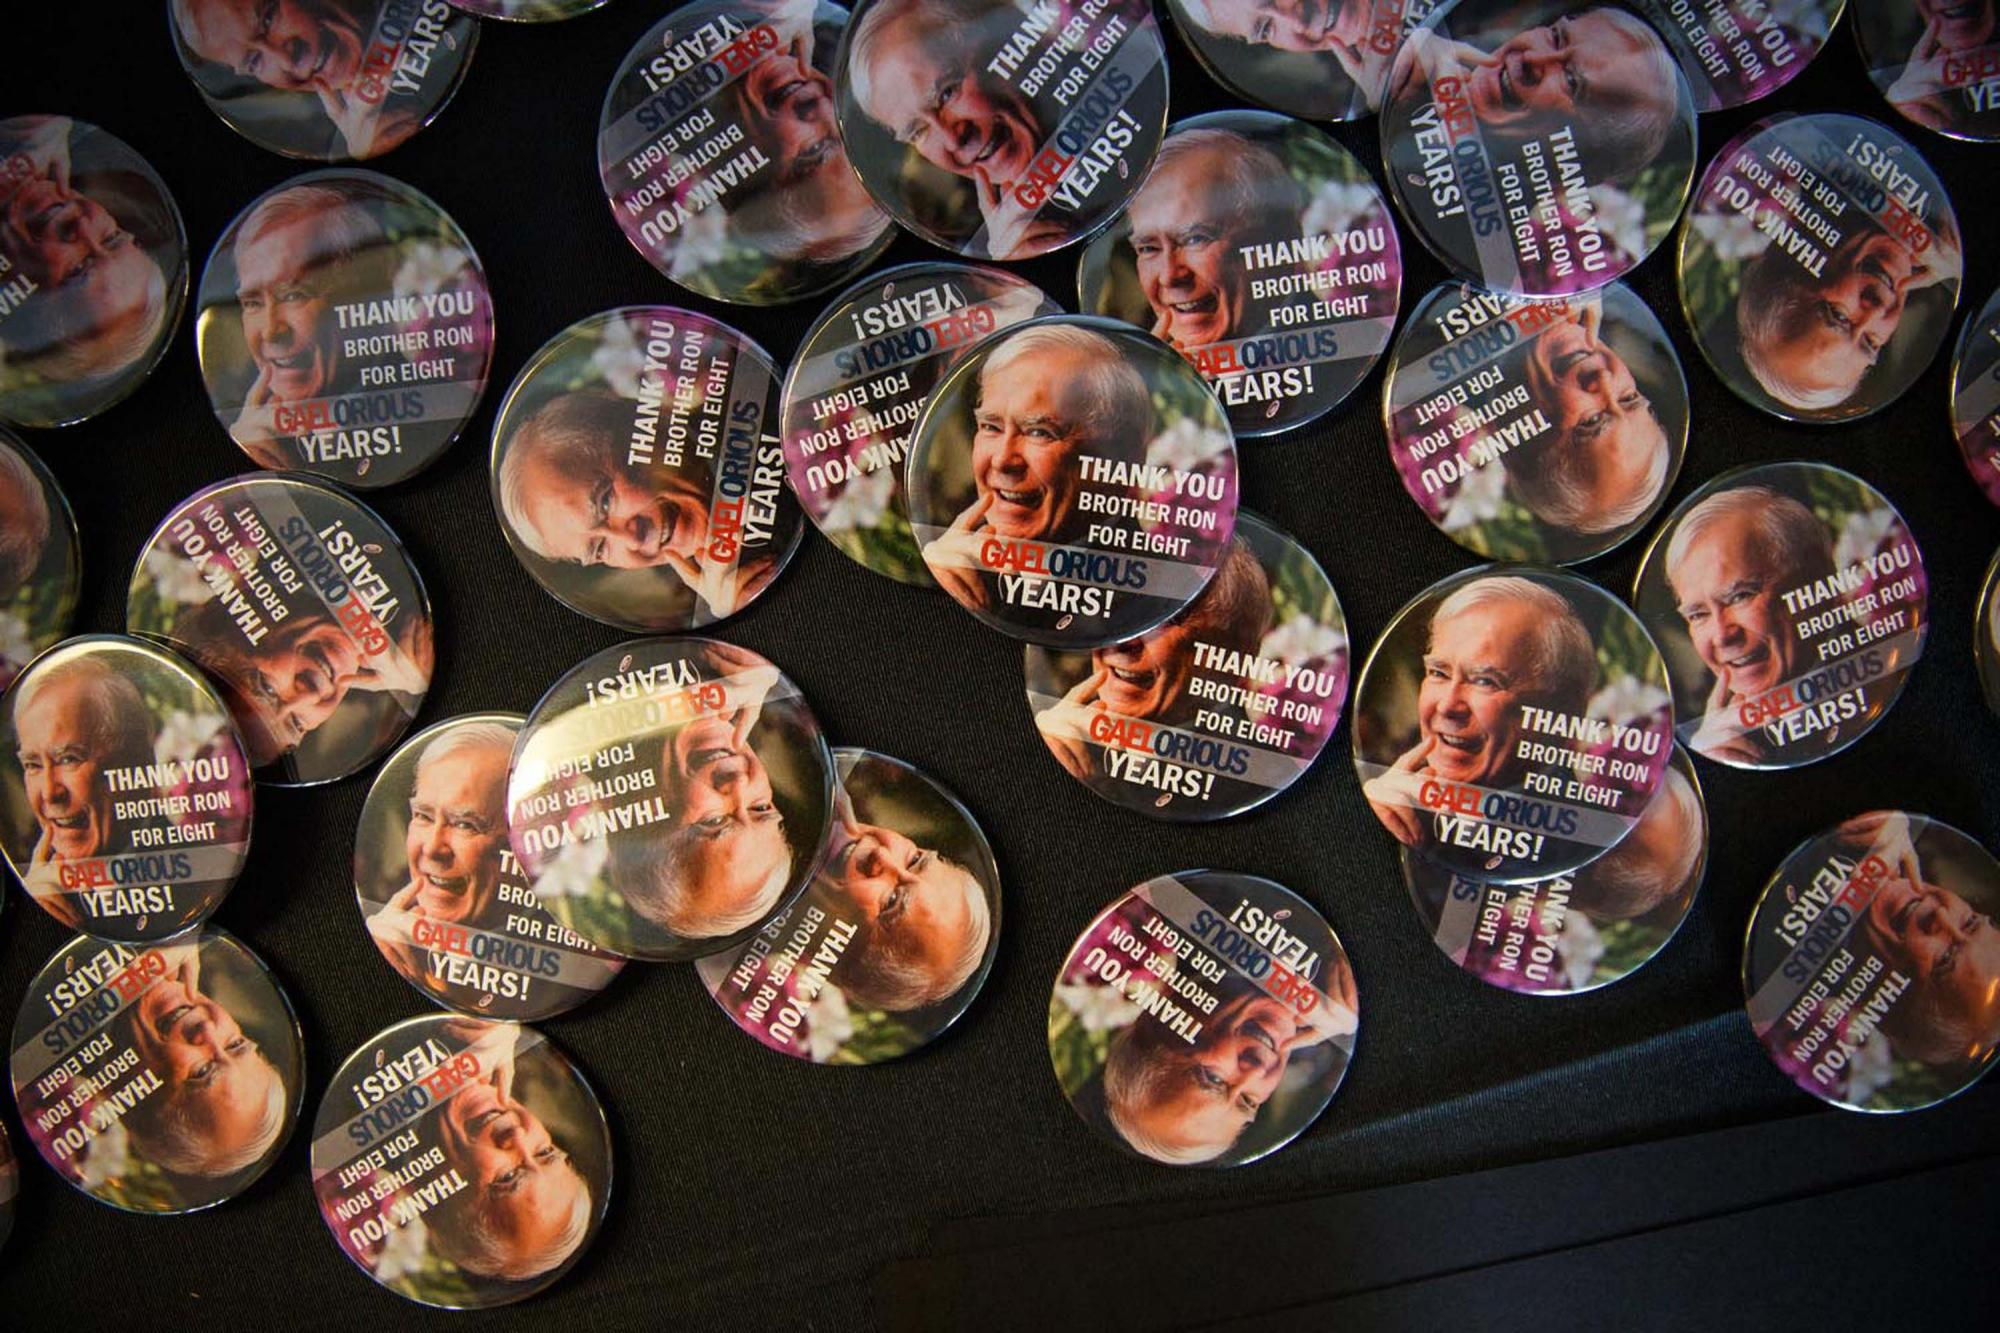 Buttons said it all: Thank you, Brother Ron, for eight Gaelorious years.